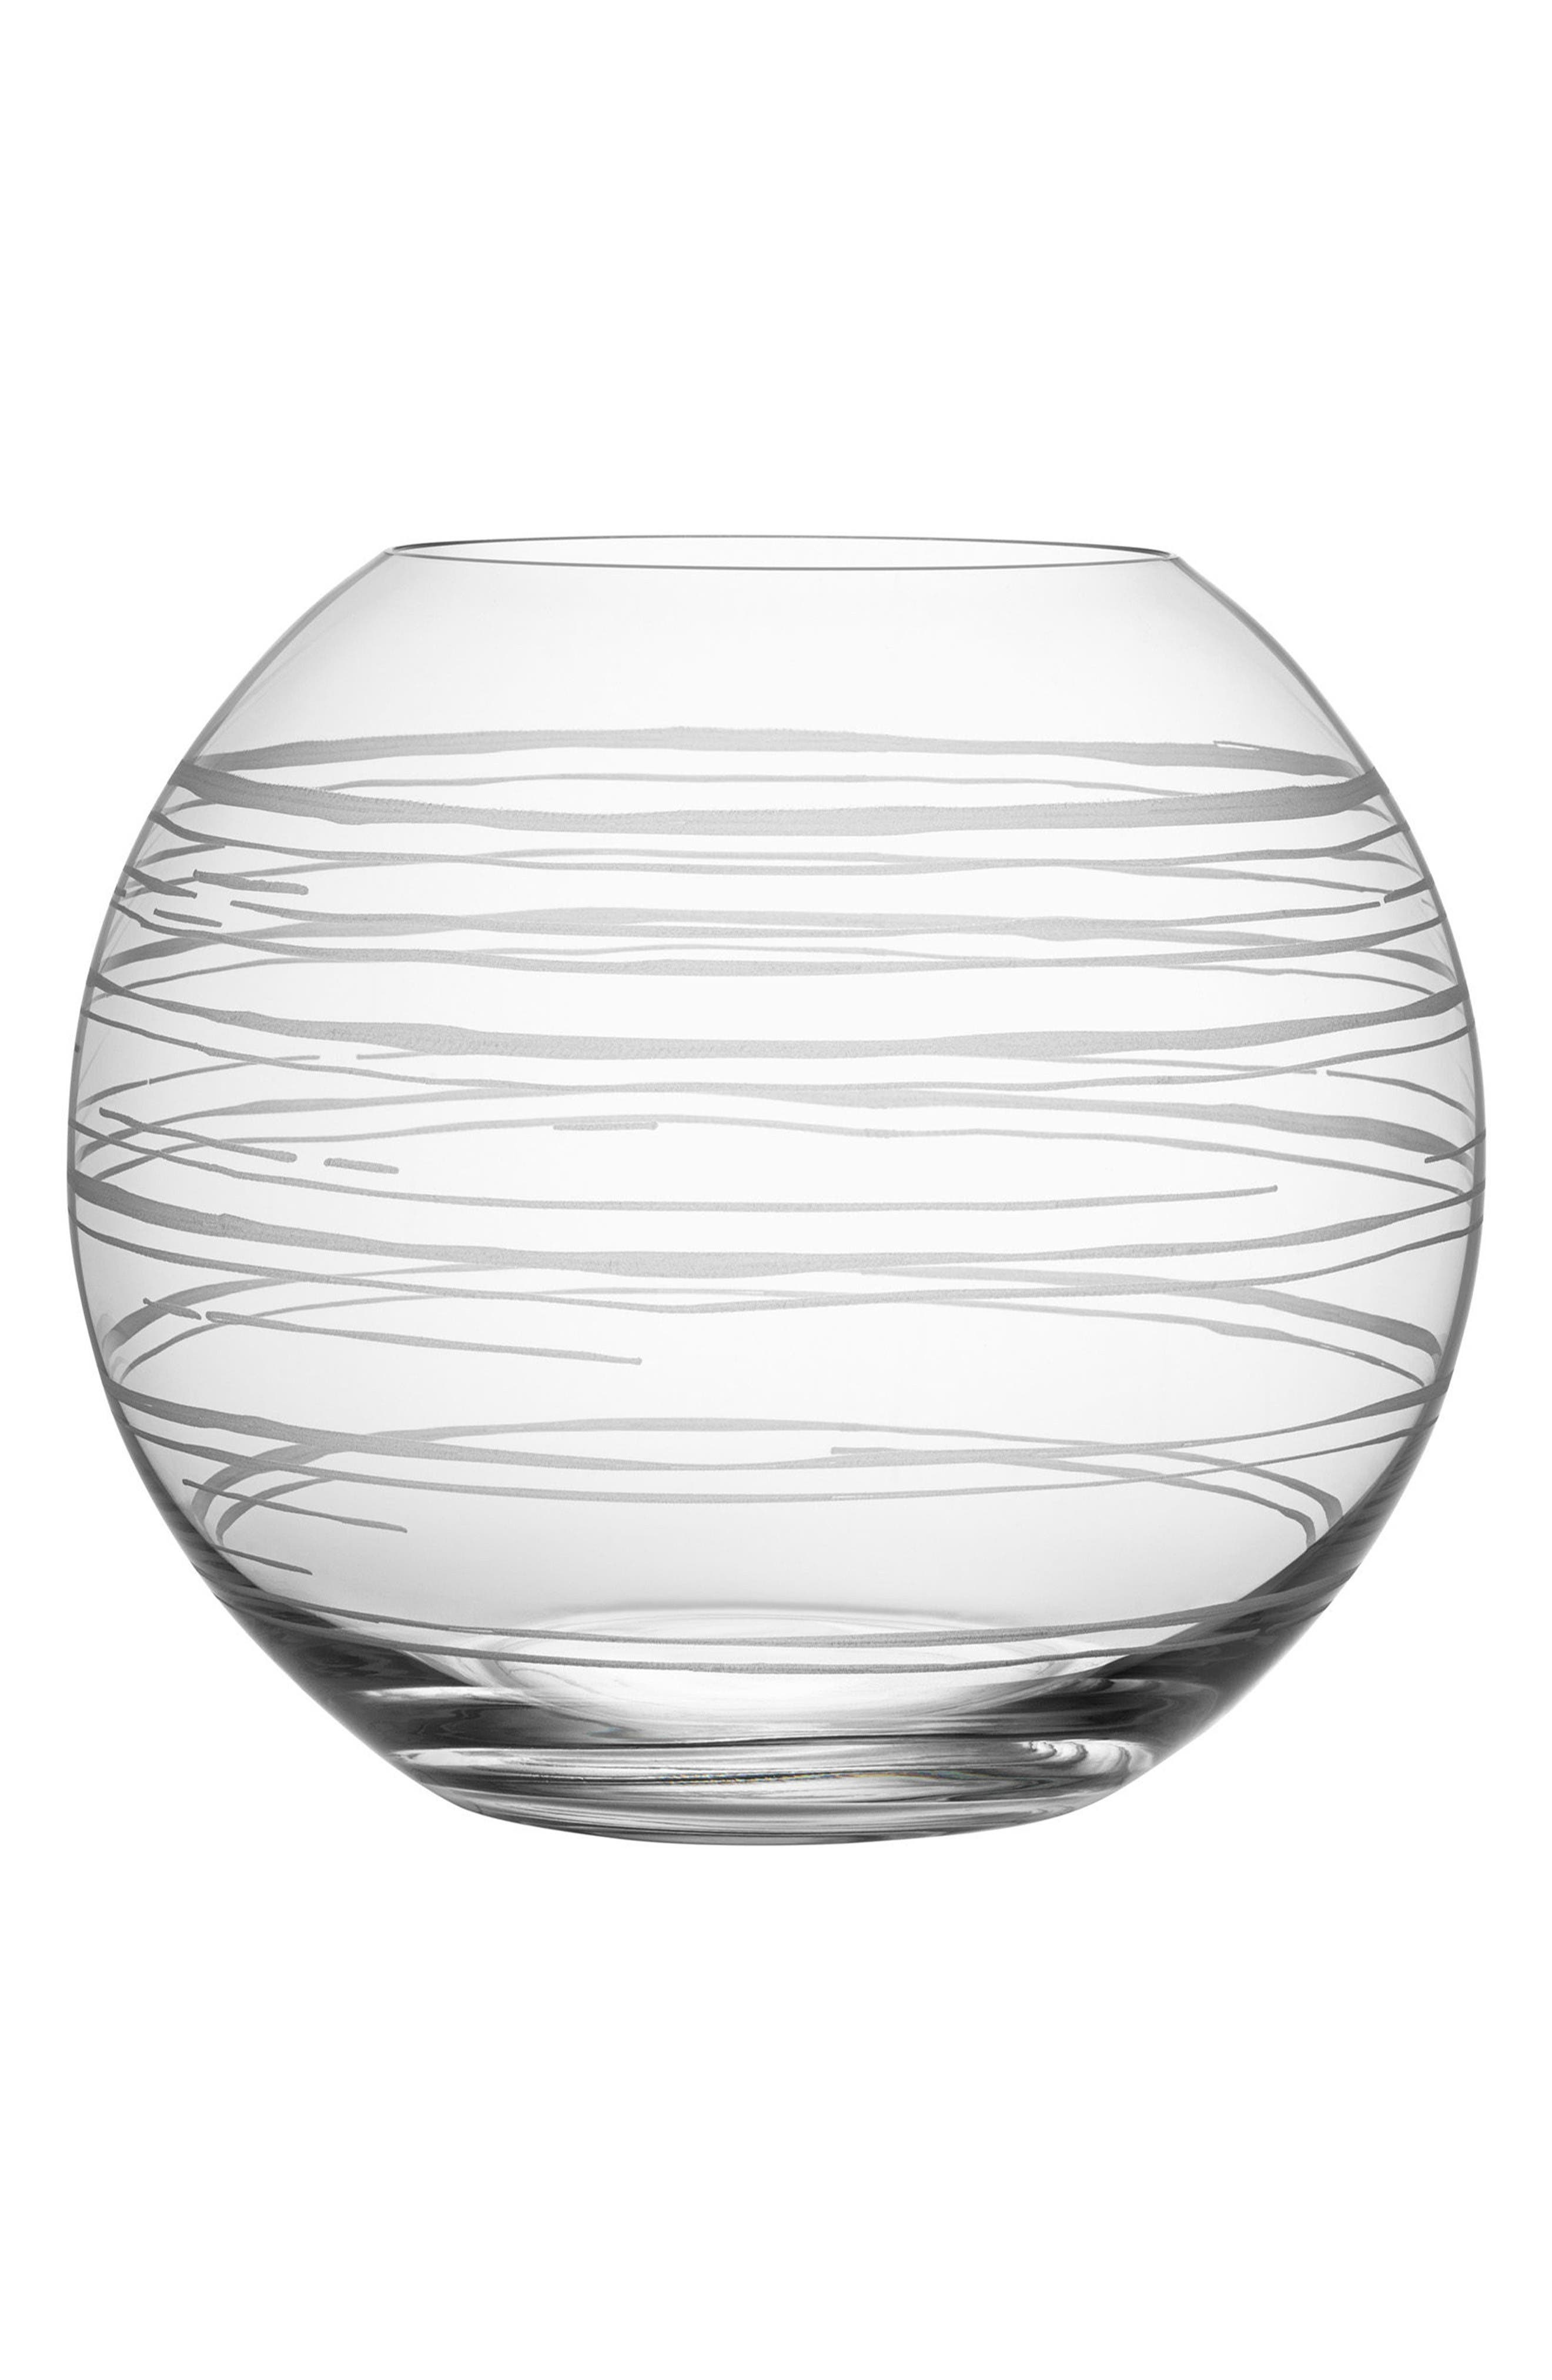 Graphic Round Vase,                             Main thumbnail 1, color,                             Clear